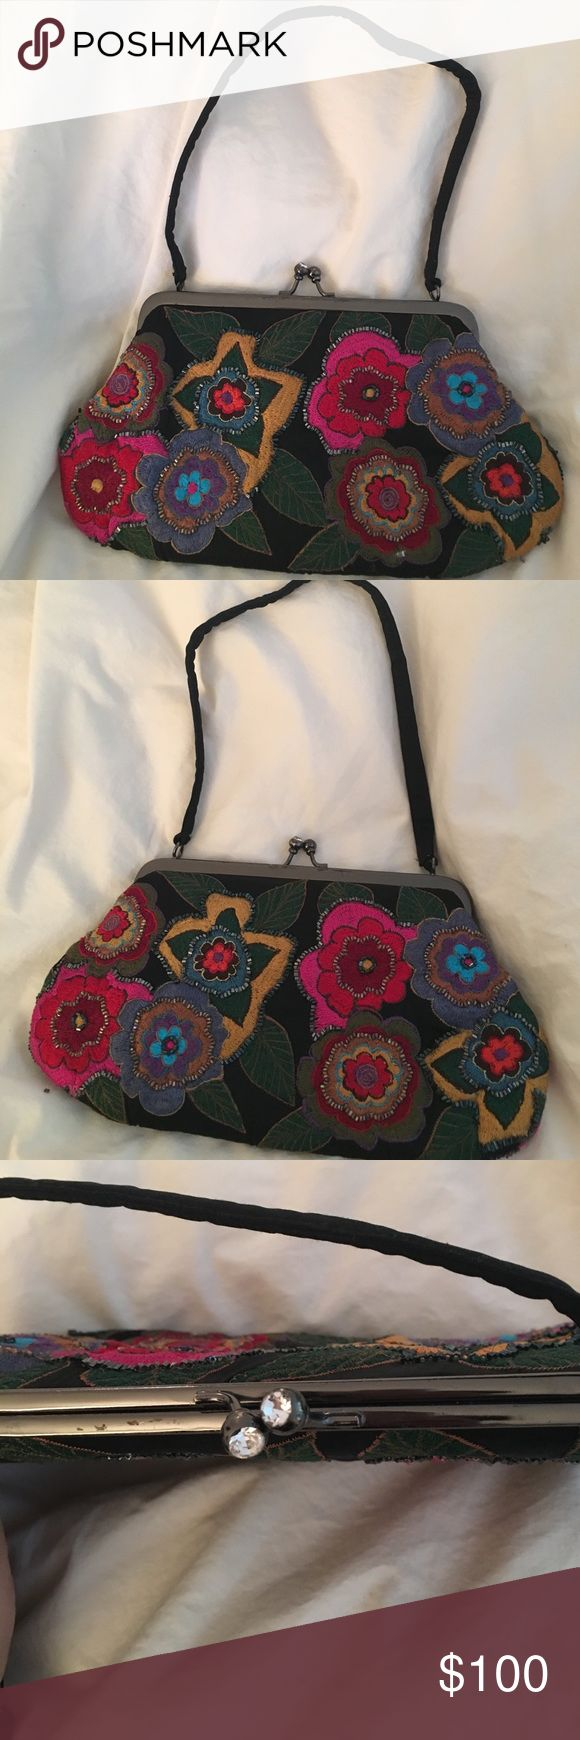 Floral beaded handbag Gorgeous heading detail and colors- great to add a POC to all black, or evening gown Marco Santi Bags Clutches & Wristlets